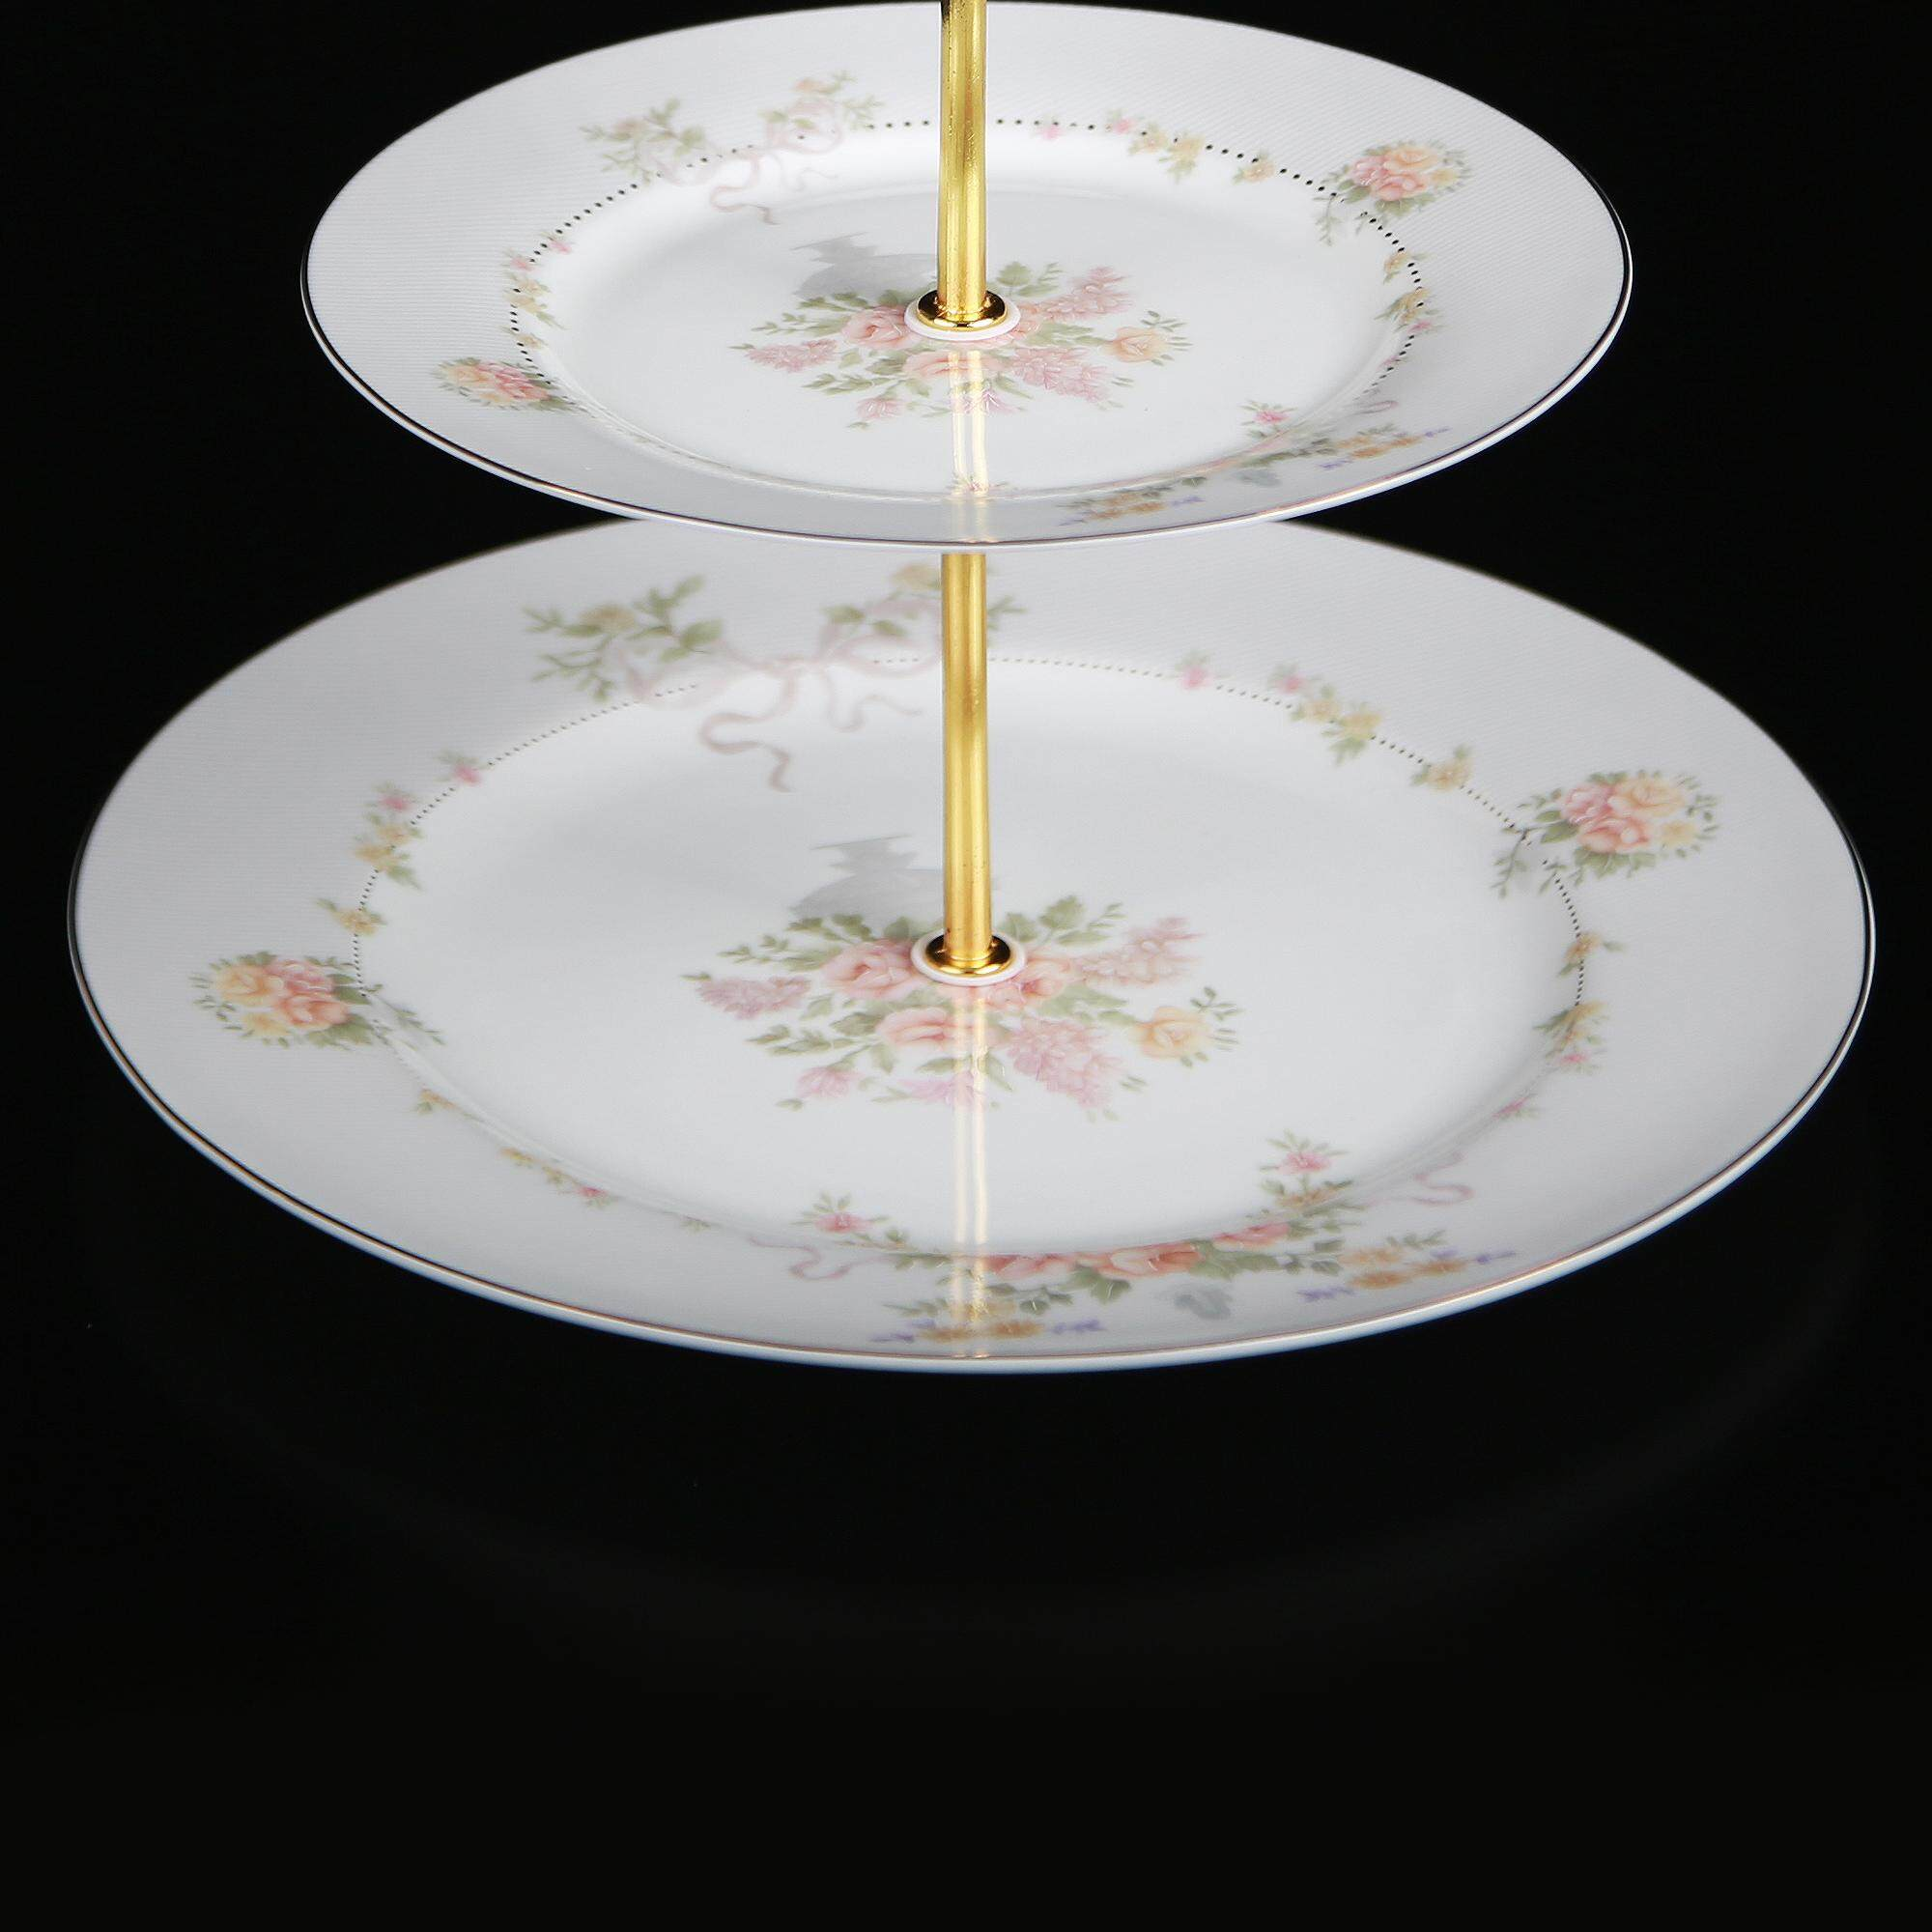 Queens Superfine Porcelain 3 Tier Cake Plate - Bouquet of Roses - 2